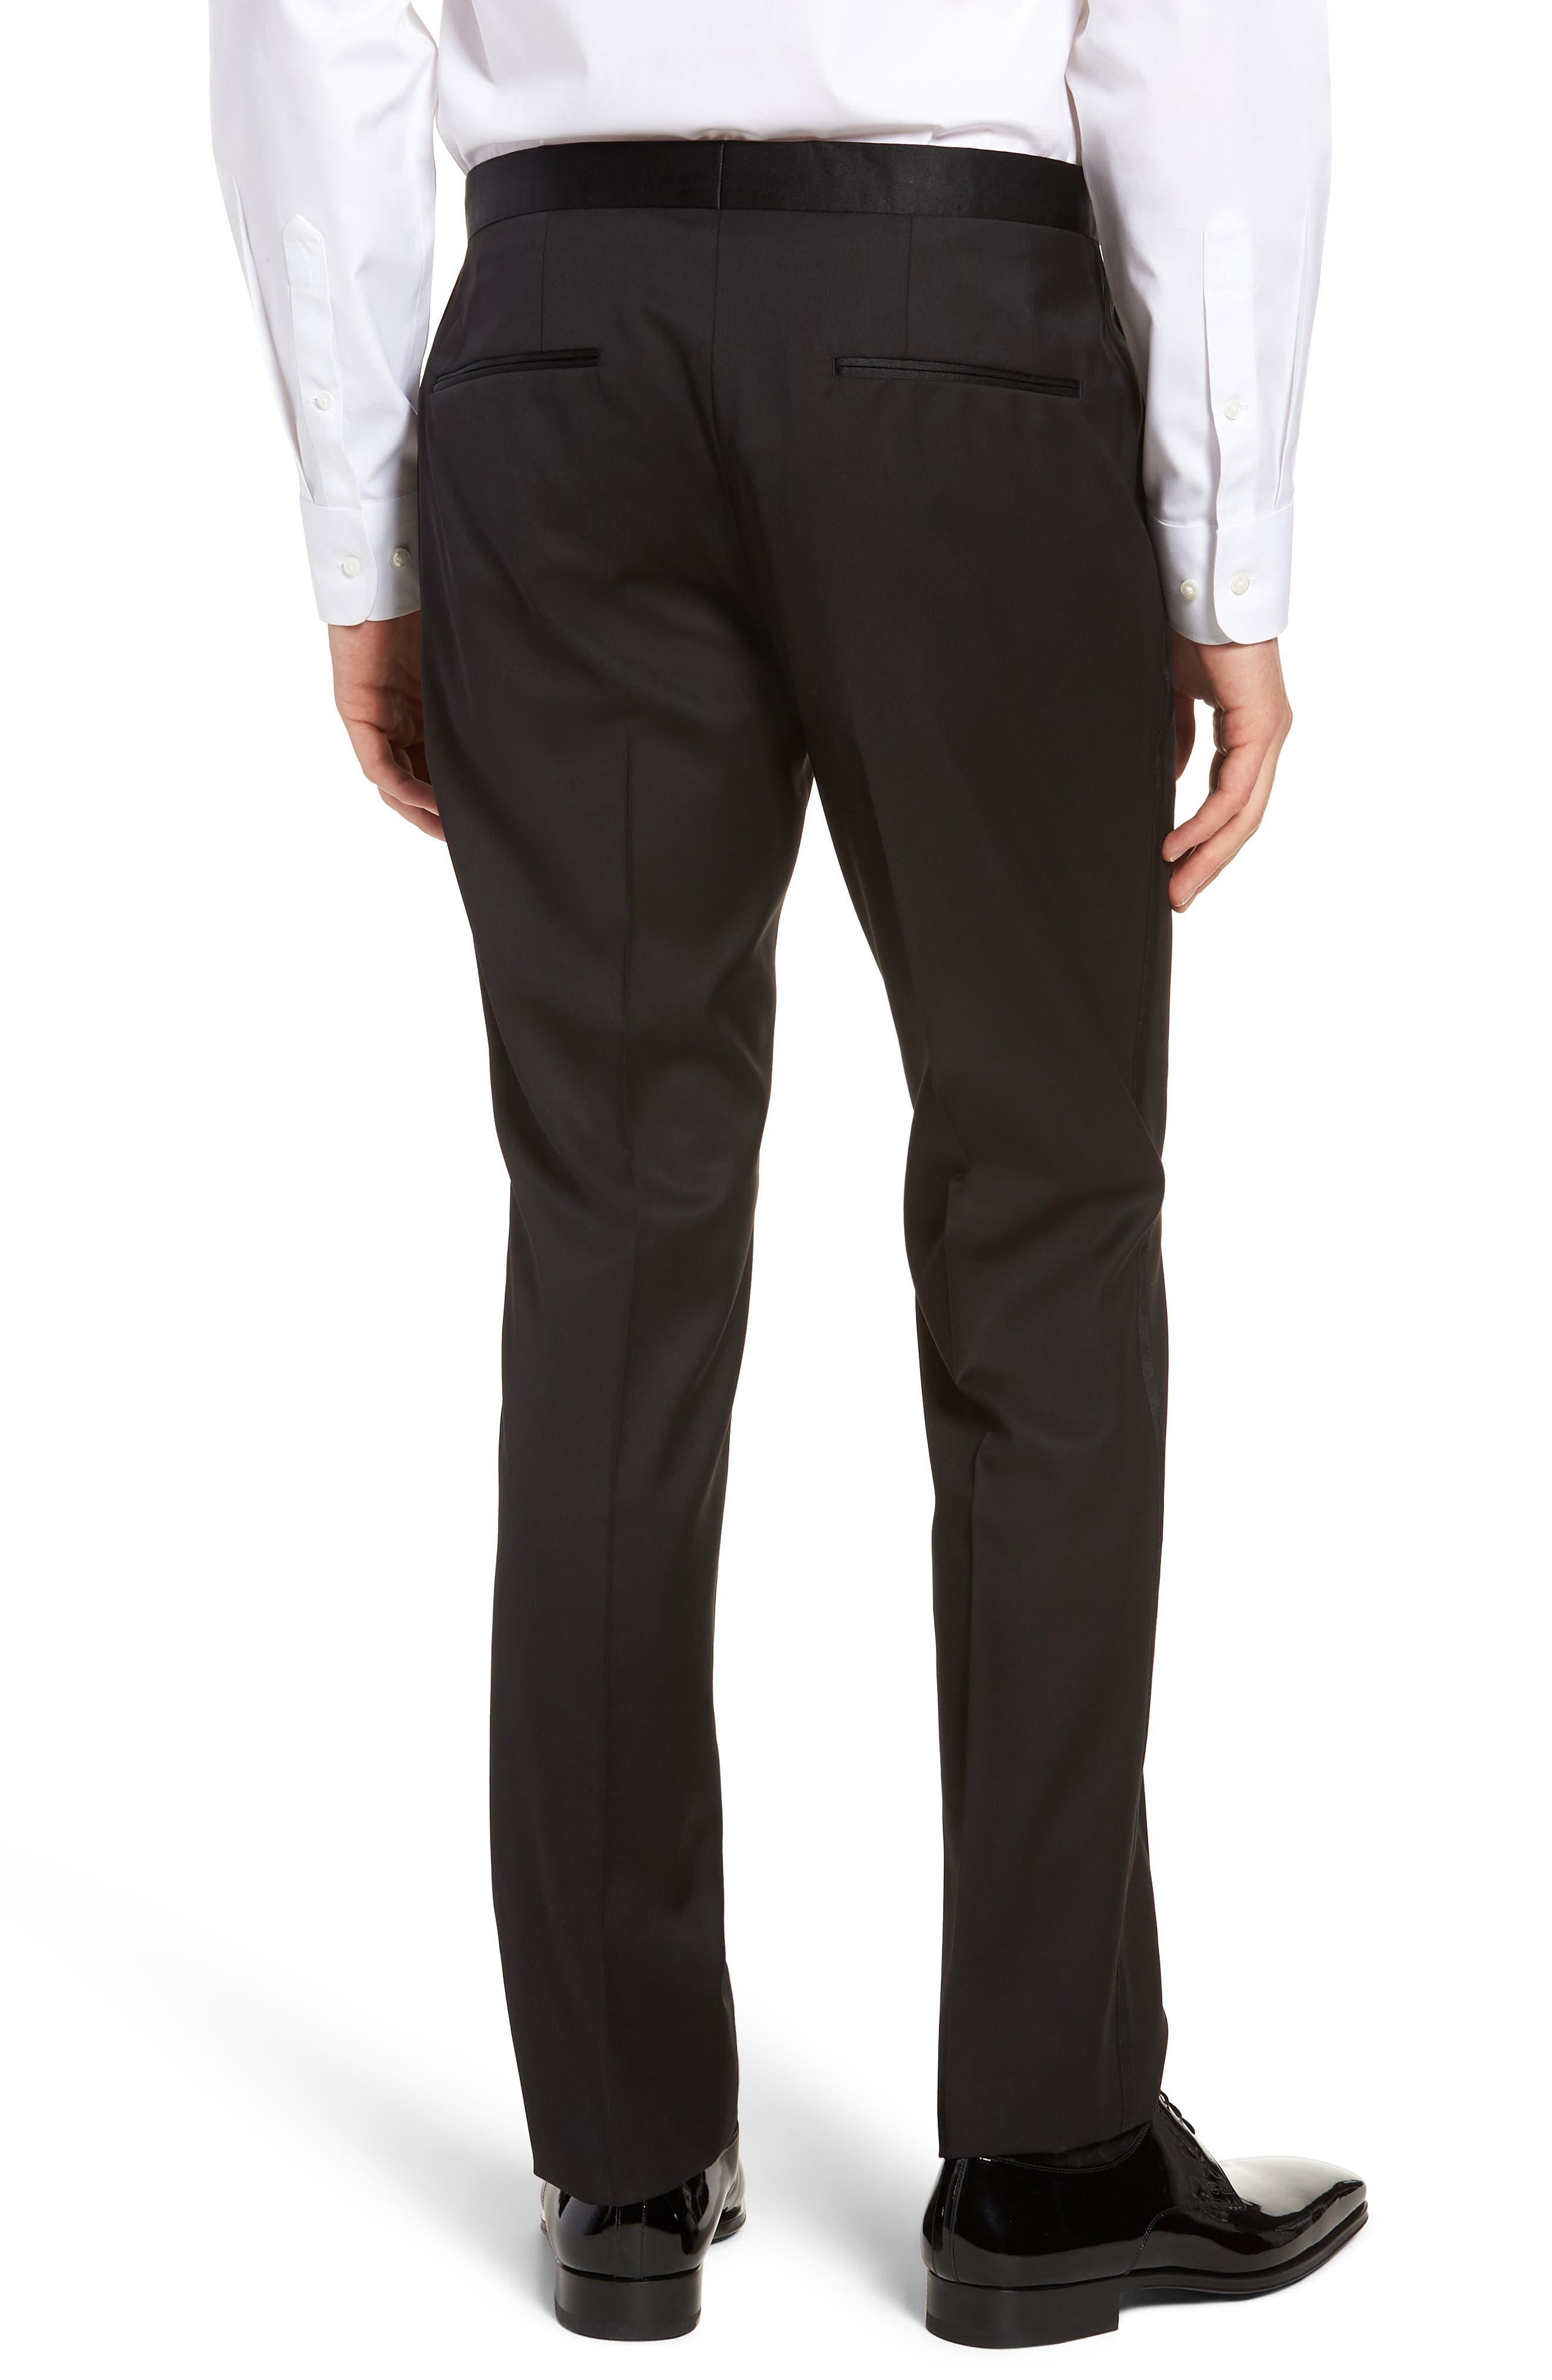 Gilan CYL Flat Front Wool Trousers,                             Alternate thumbnail 2, color,                             BLACK